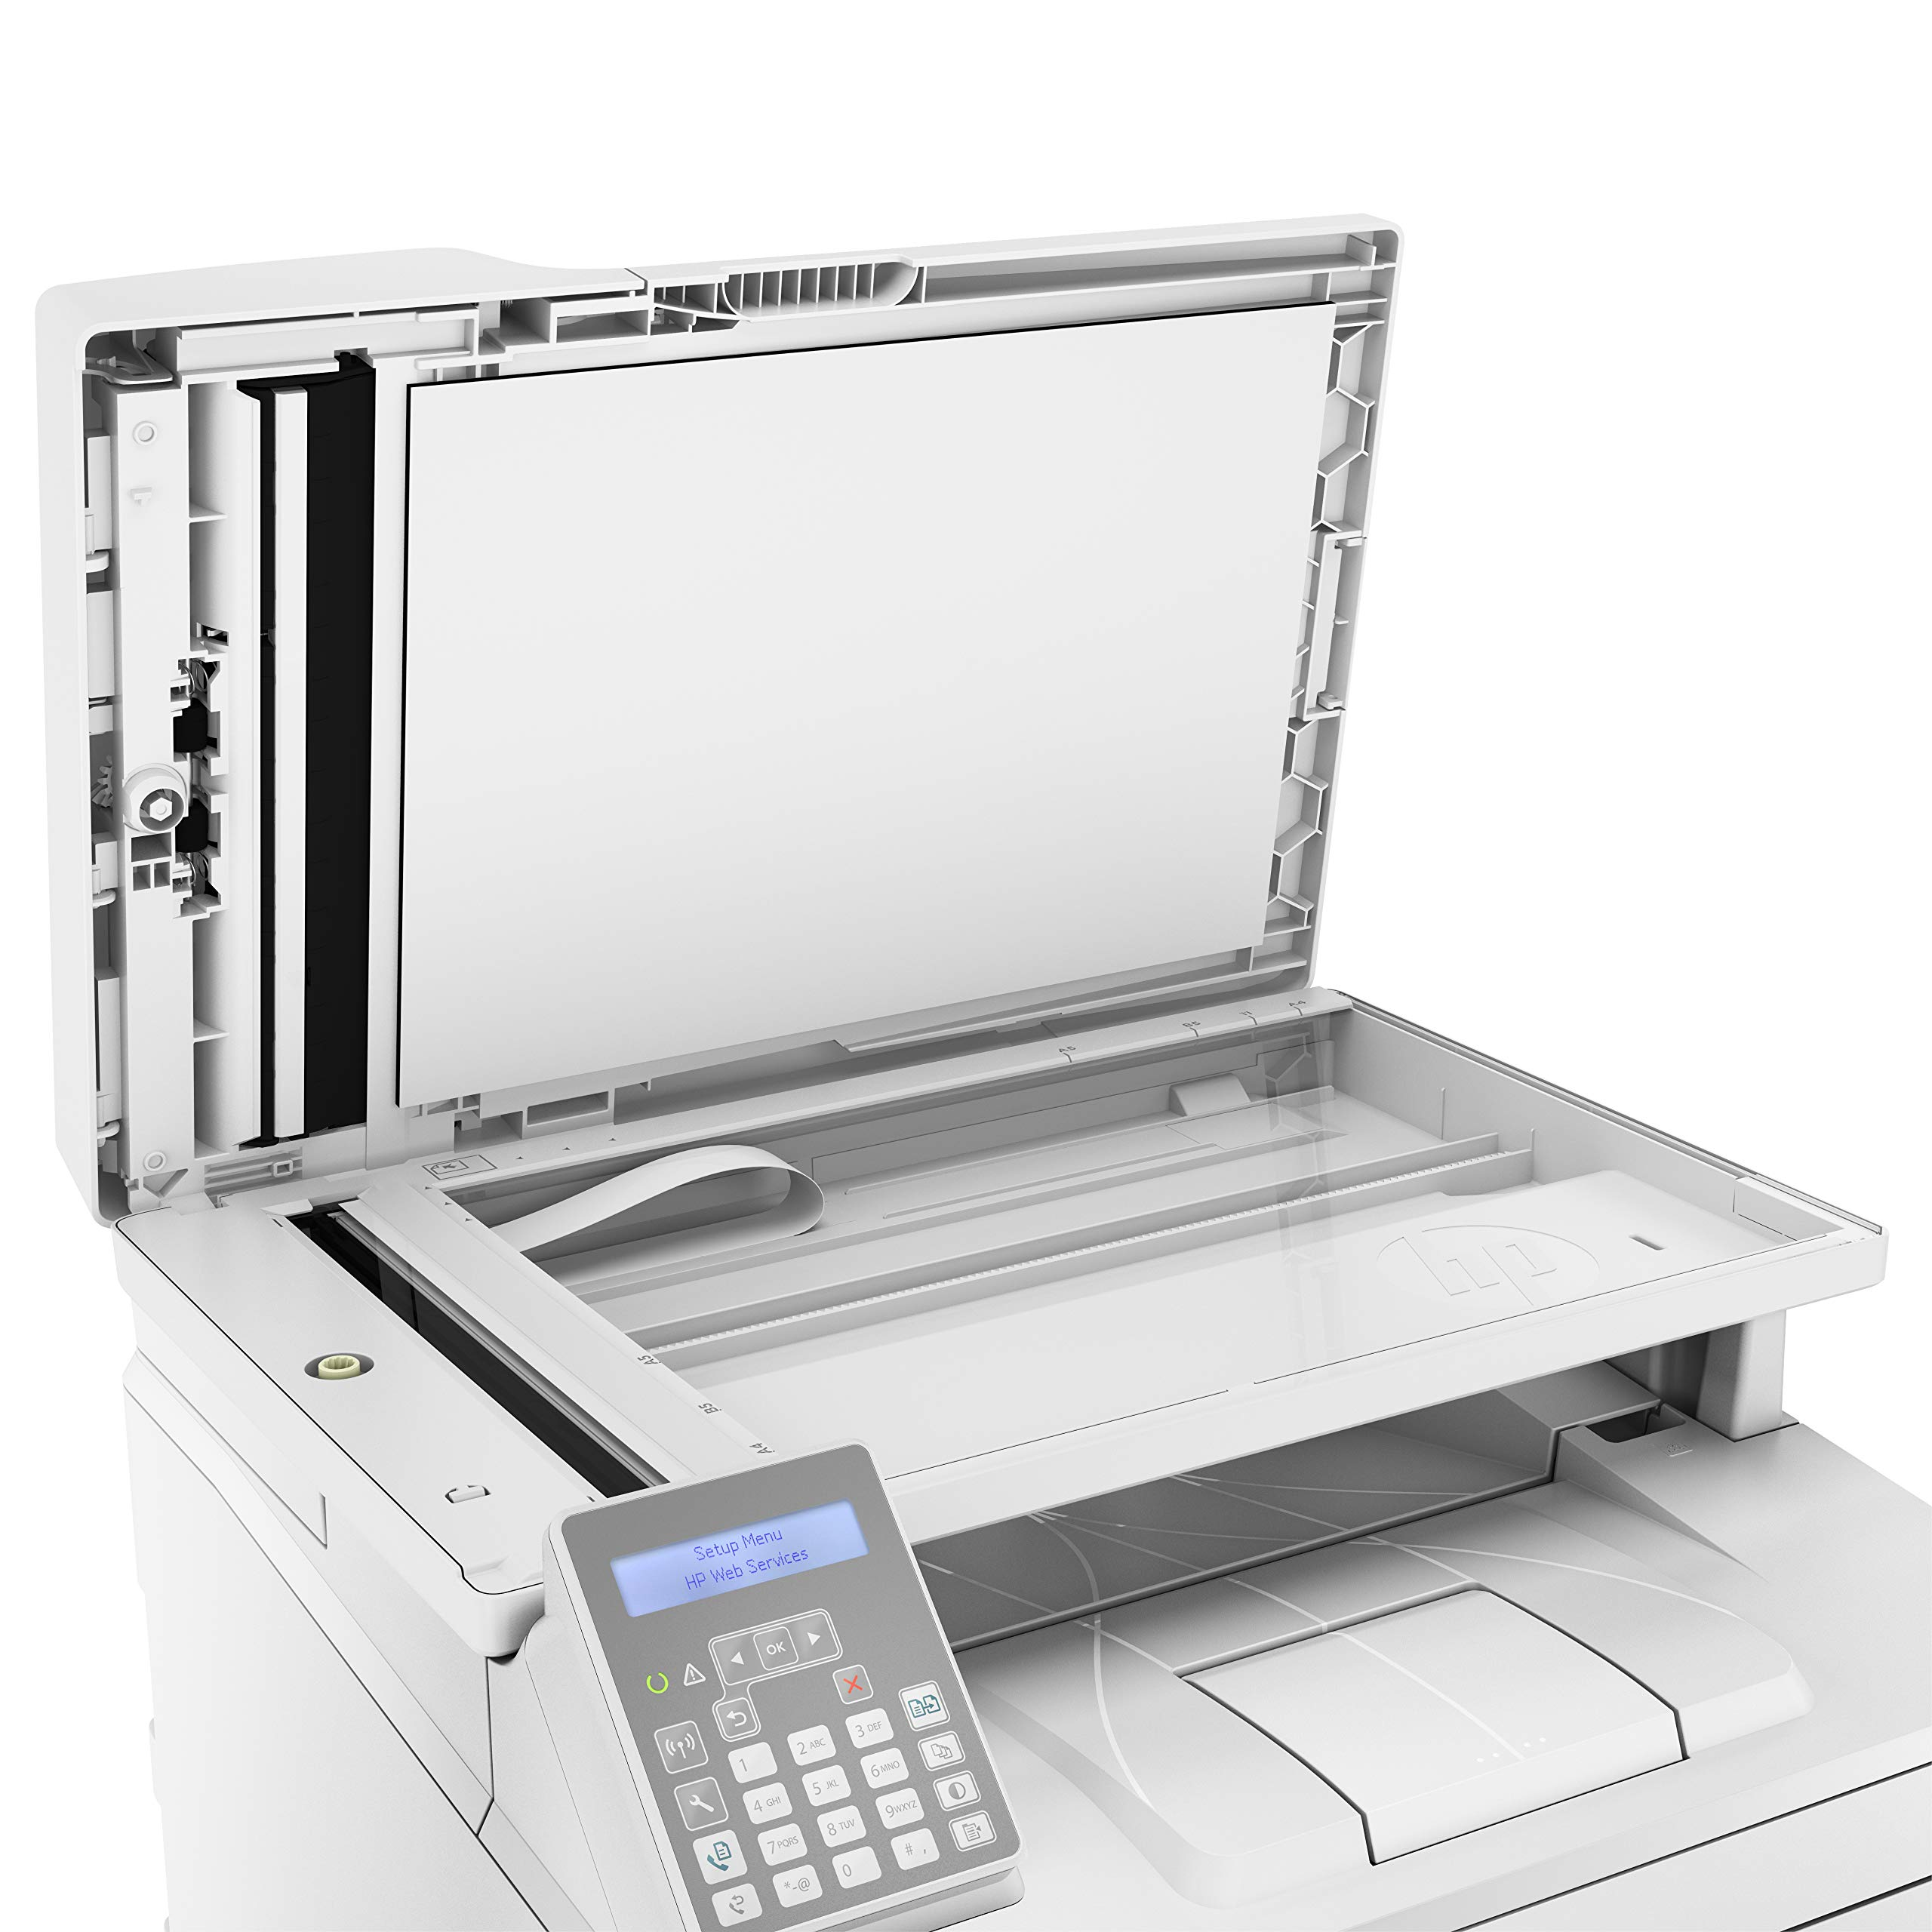 HP Laserjet Pro M148fdw All-in-One Wireless Monochrome Laser Printer with Auto Two-Sided Printing, Mobile Printing, Fax & Built-in Ethernet (4PA42A) by HP (Image #19)